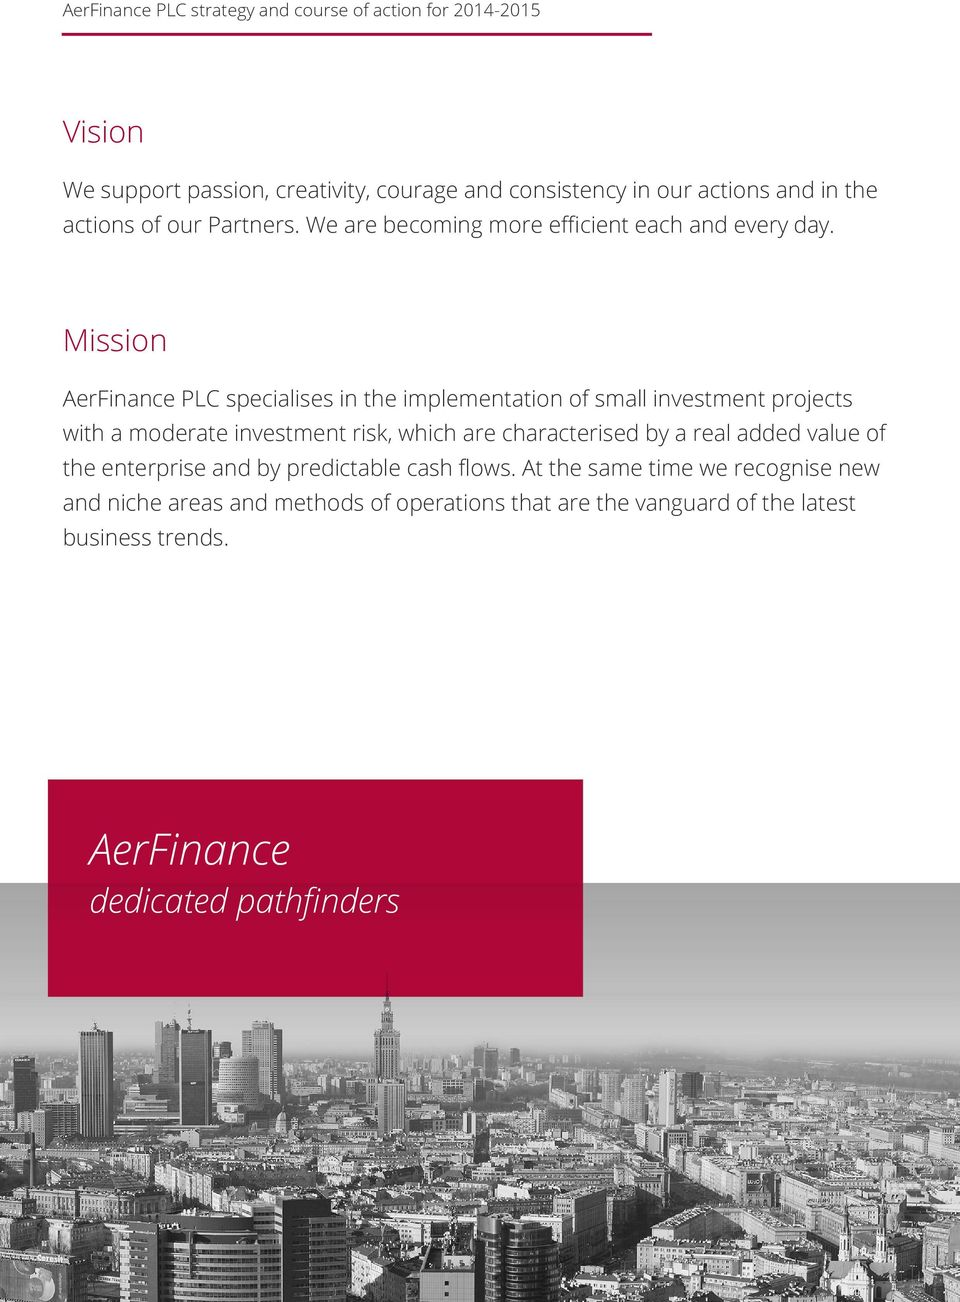 Mission AerFinance PLC specialises in the implementation of small investment projects with a moderate investment risk, which are characterised by a